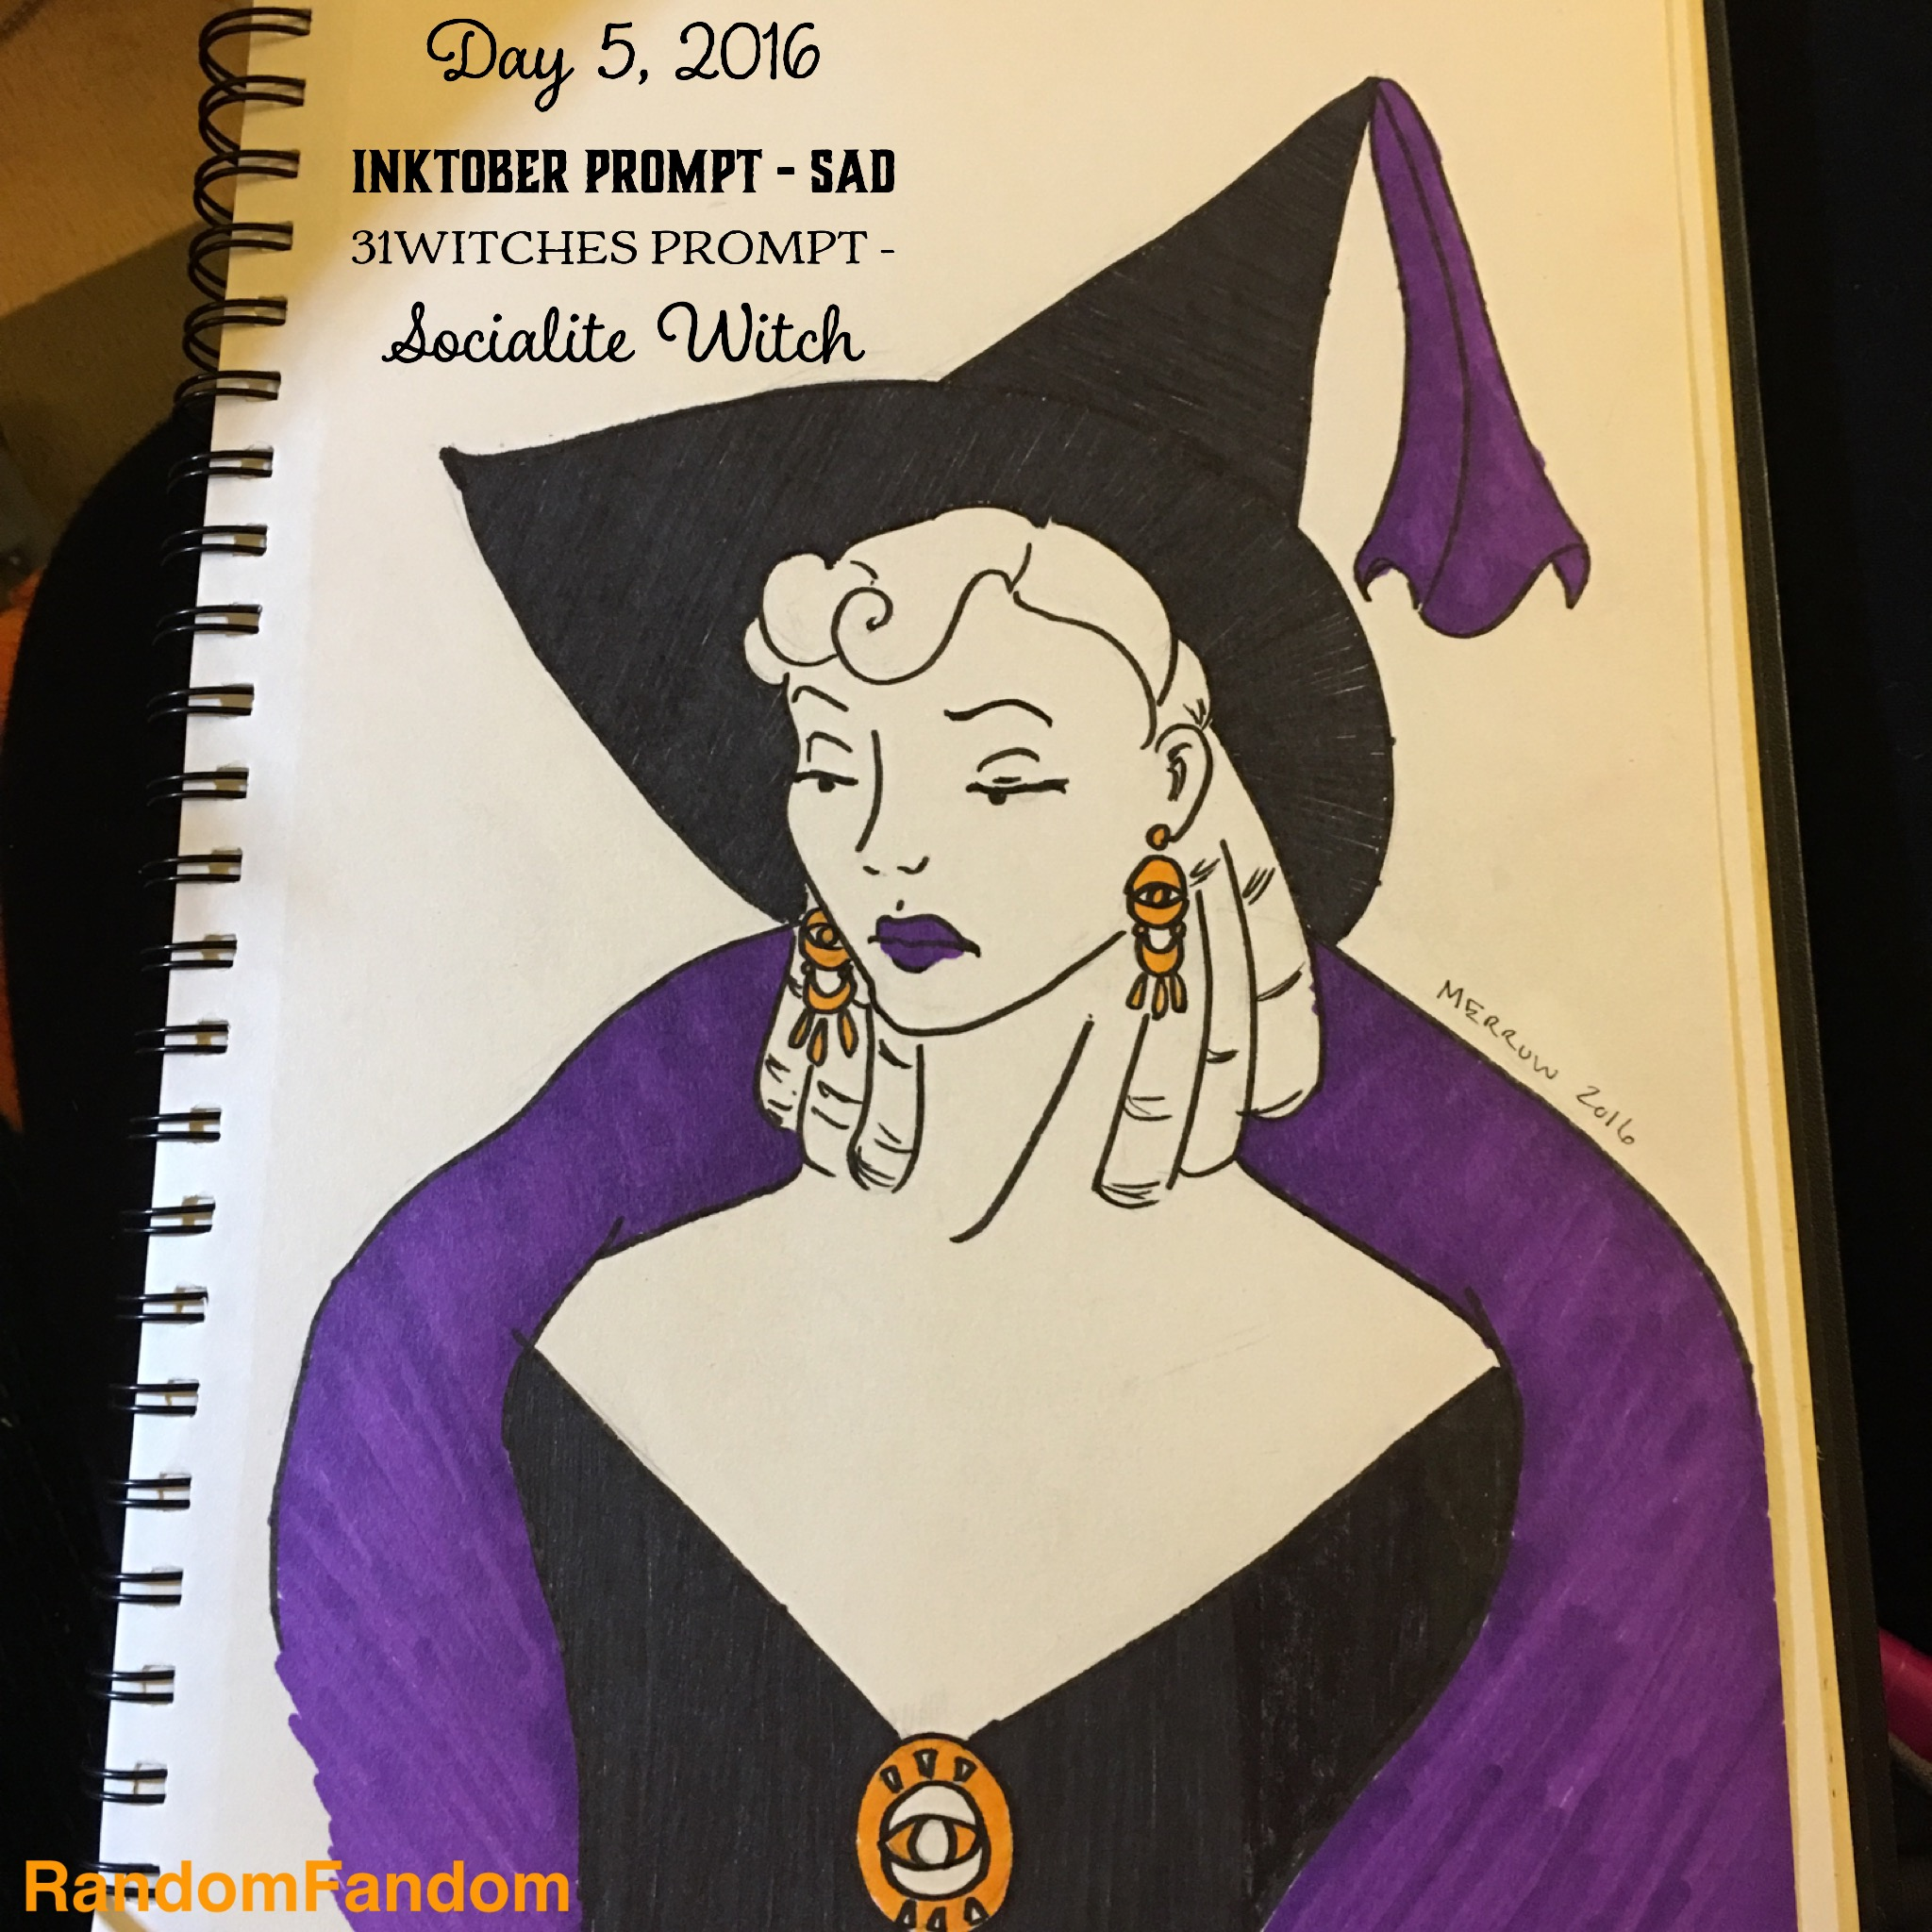 A bored looking socialite witch in a purple stole with gaudy earrings